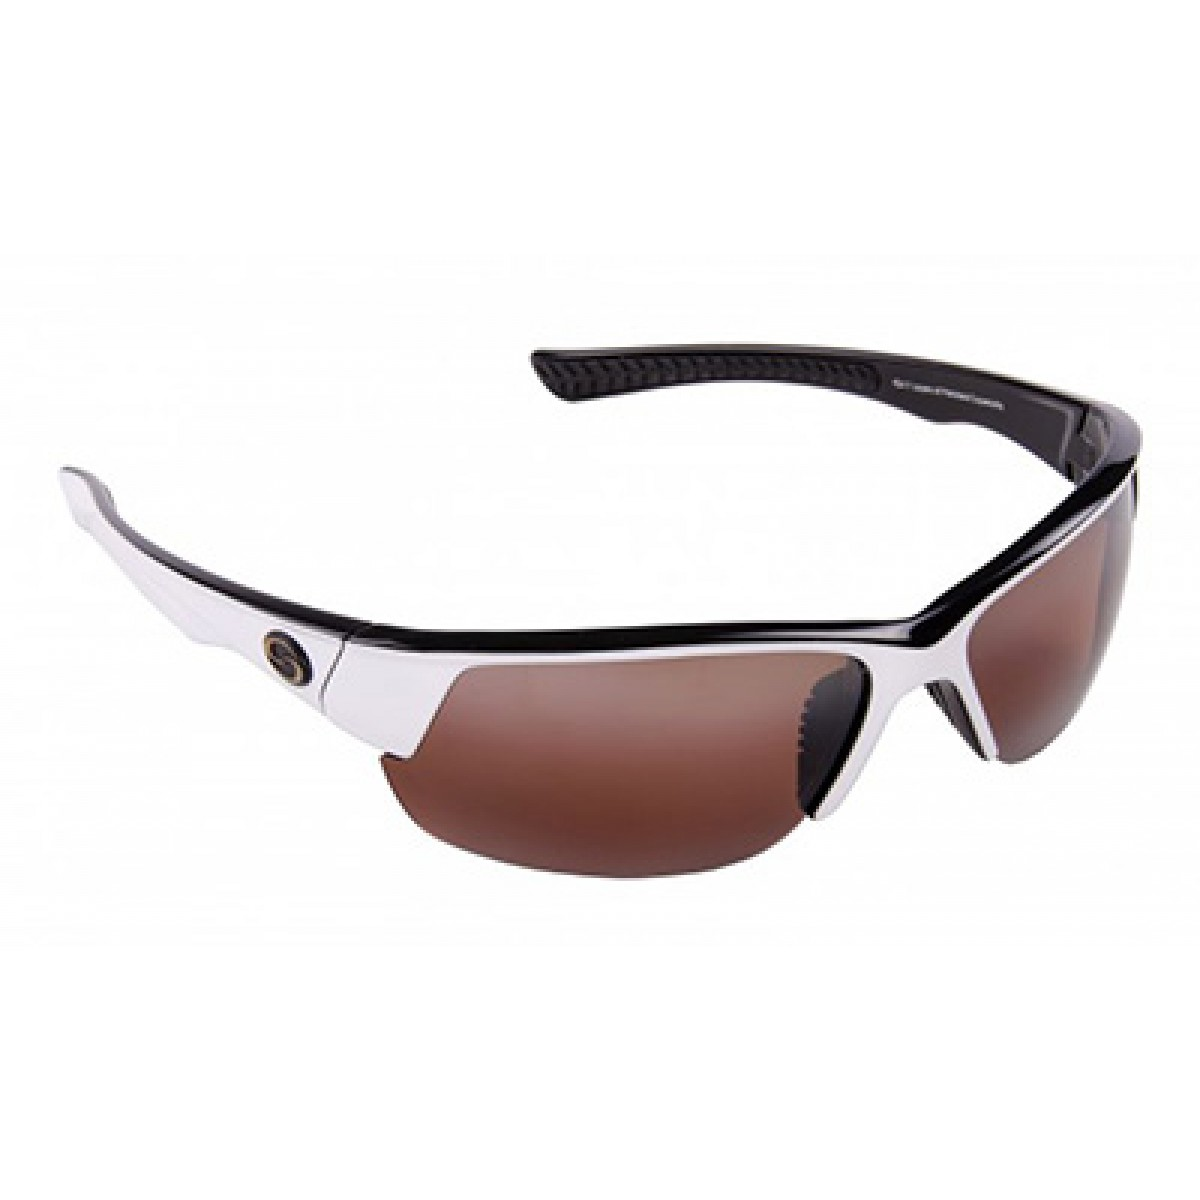 Strike King S11 Sunglasses  strike king s11 sunglasses mens susquehanna fishing tackle